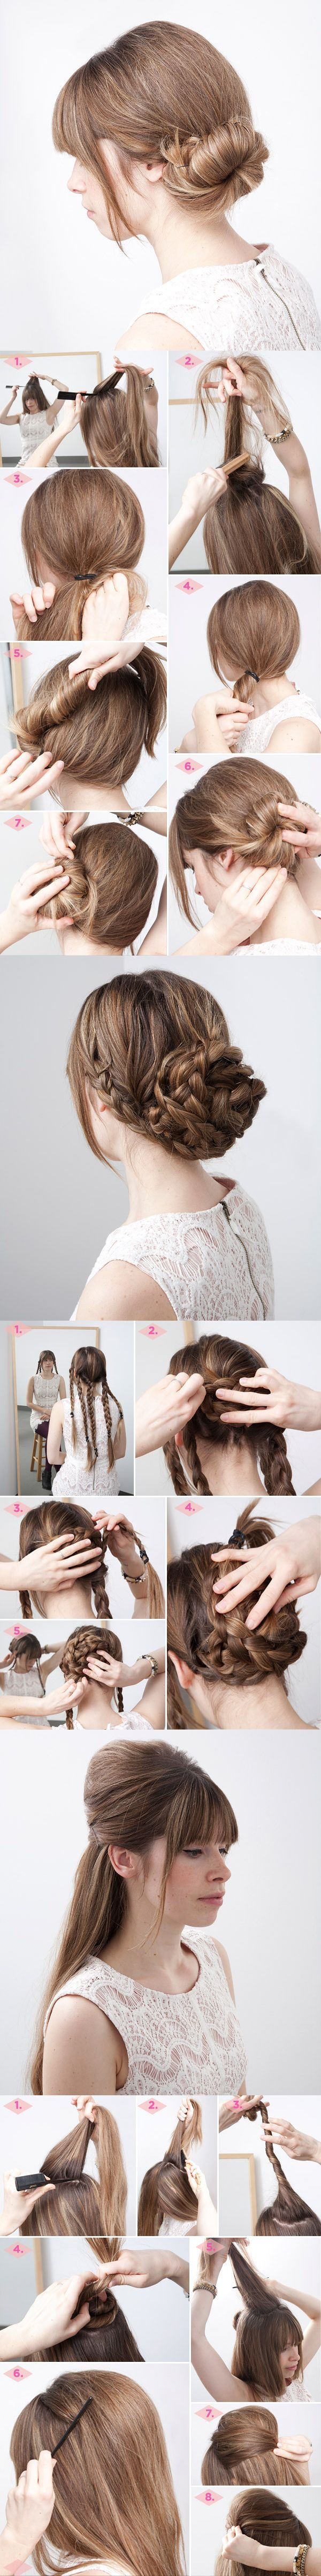 Oh-So-Simple Bun Hairstyles Tutorials: 3 Kinds of Bun Hairstyles Included